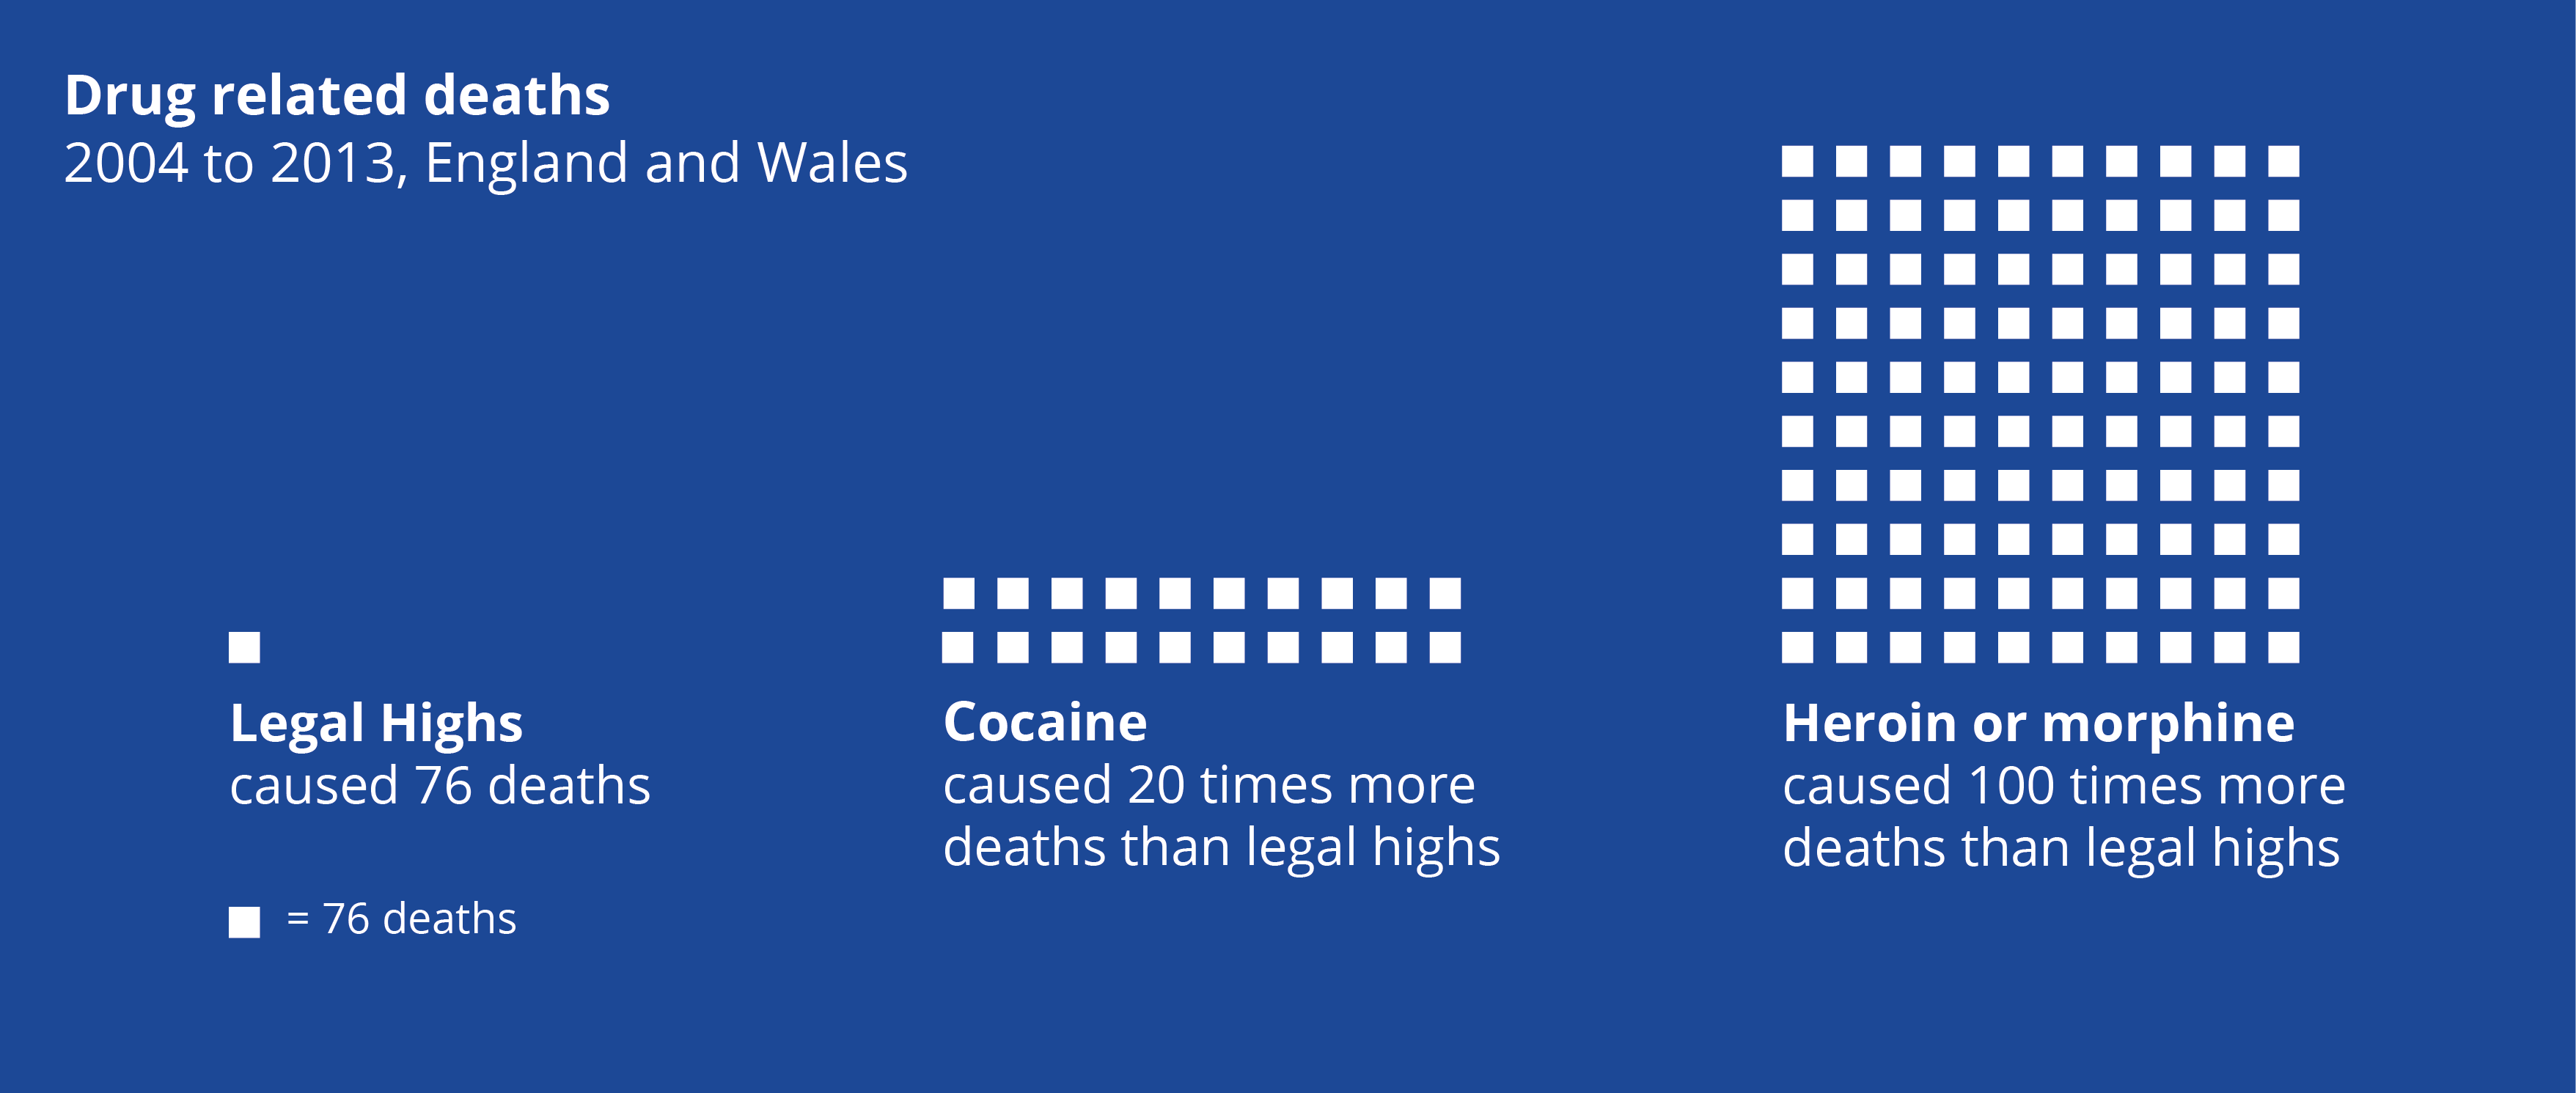 Deaths from legal highs